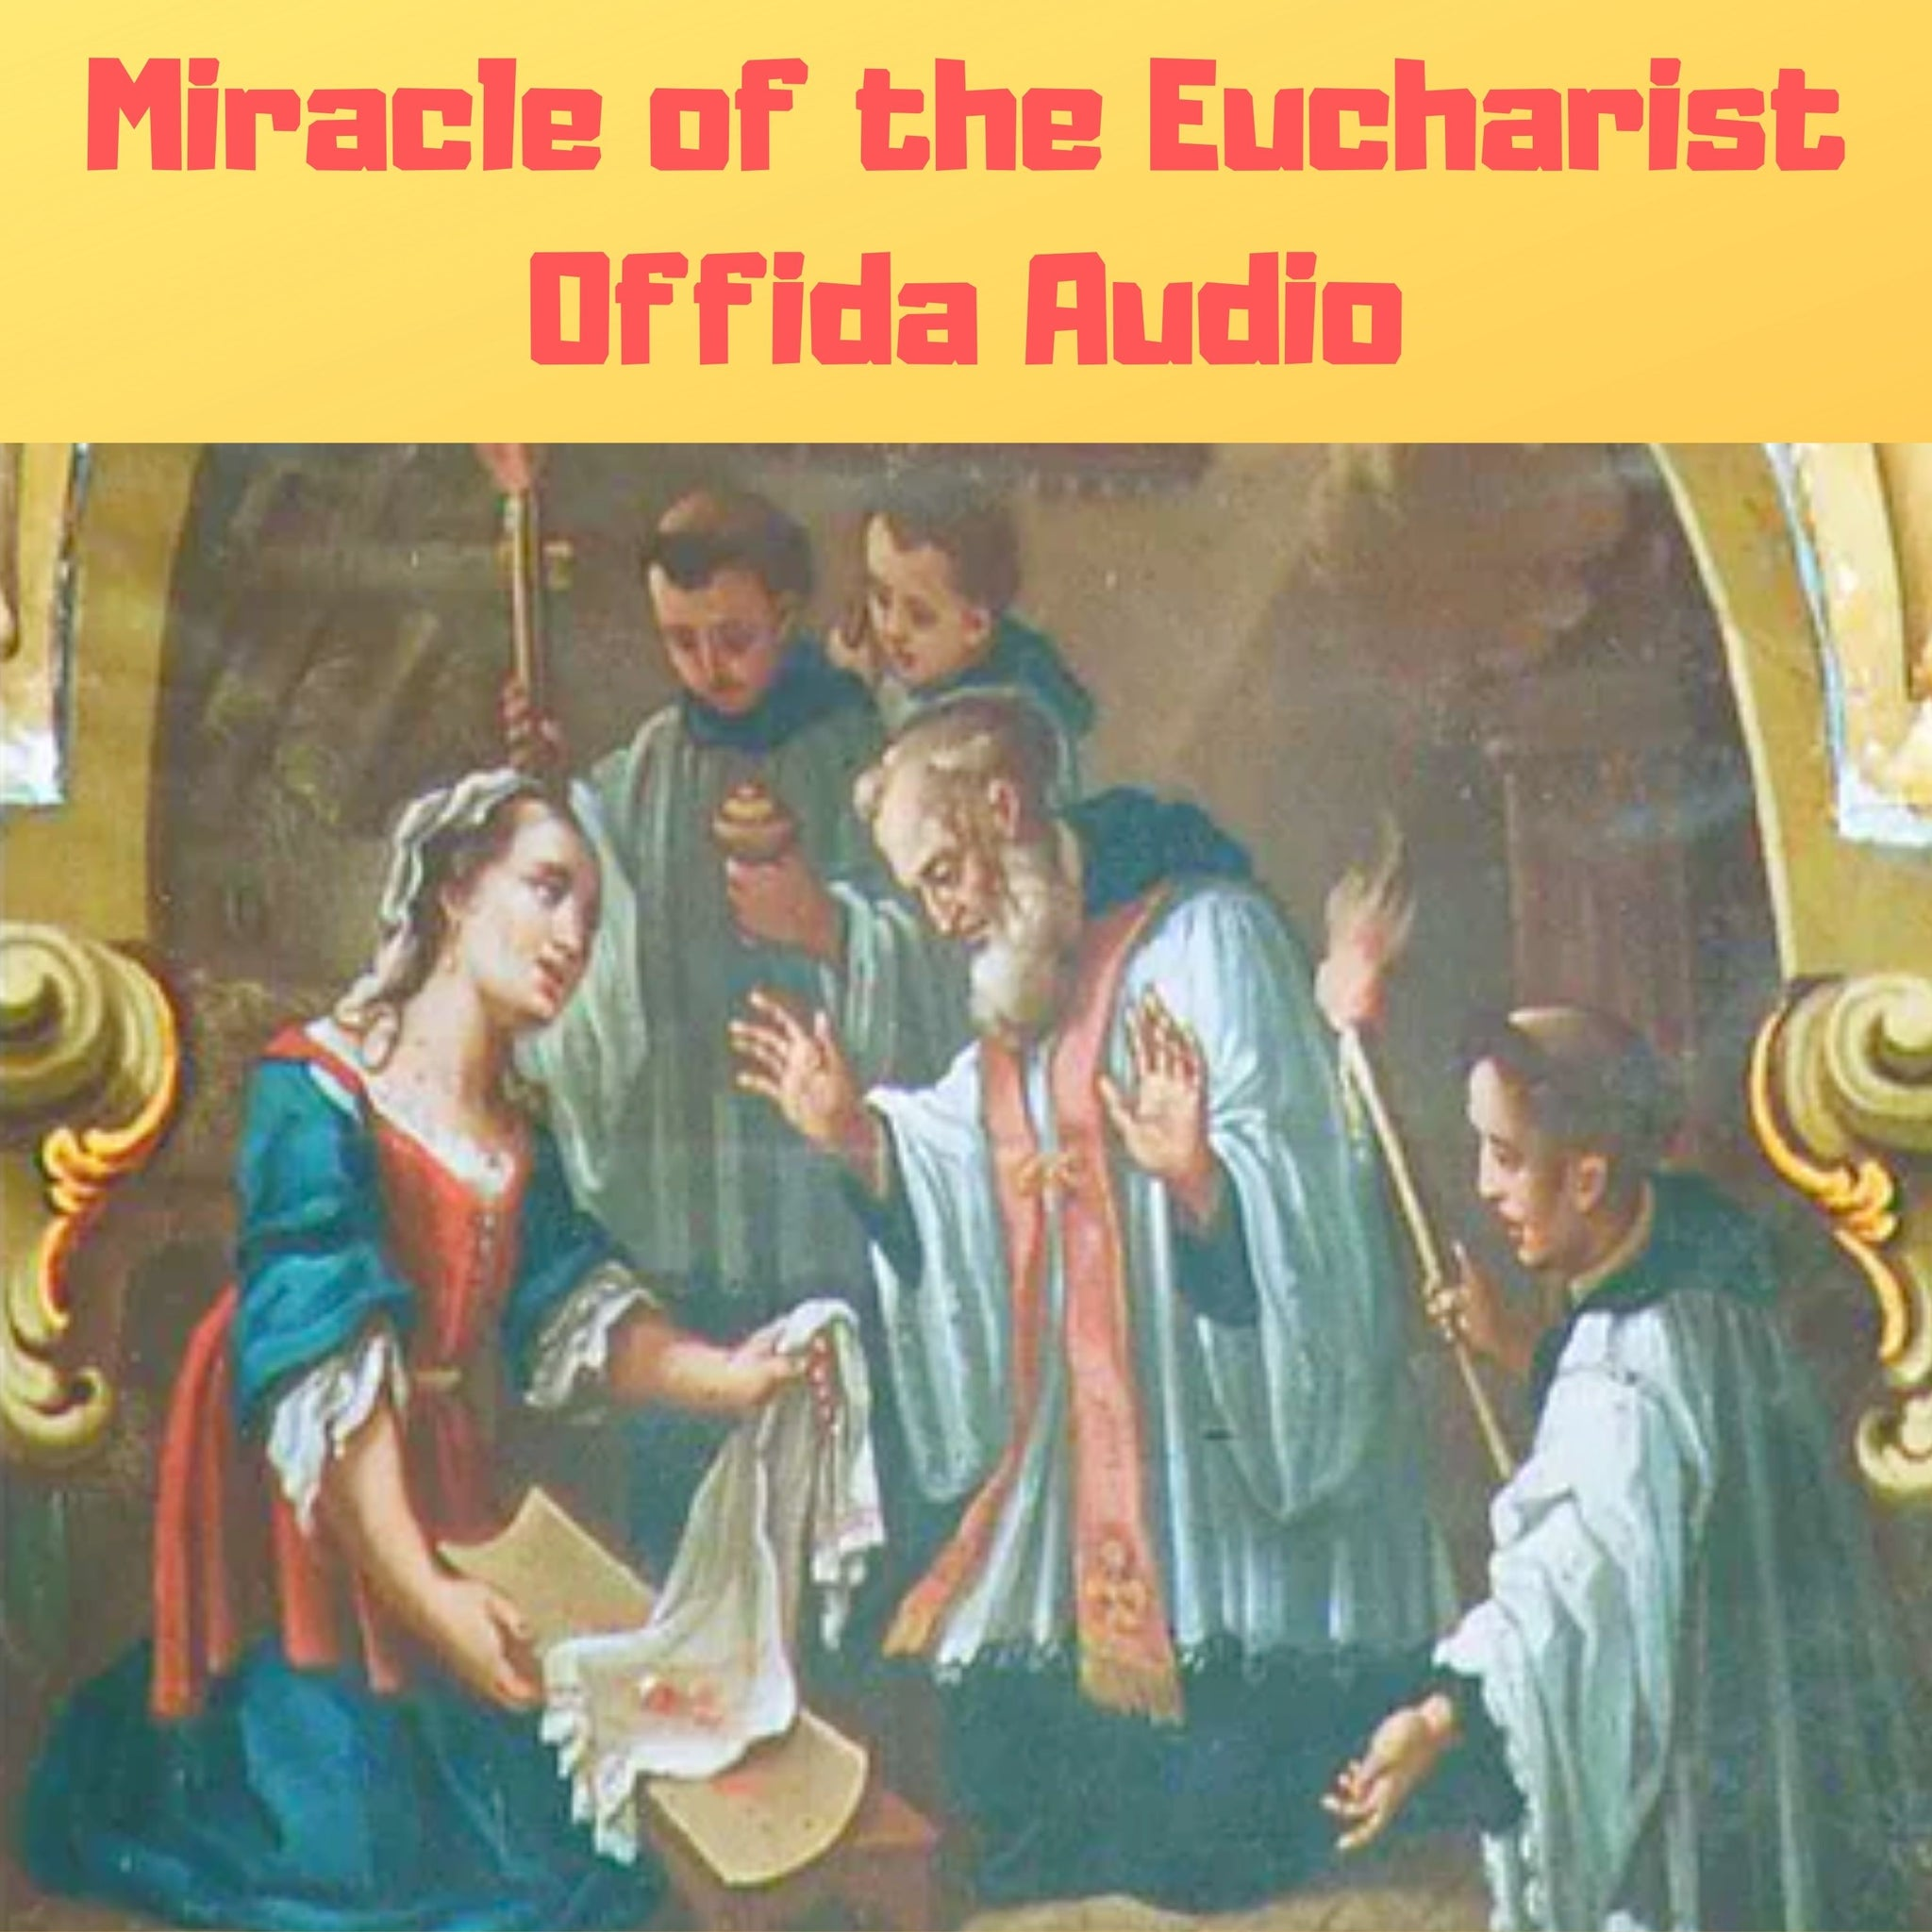 Miracle of the Eucharist of Offida Audiobook - Bob and Penny Lord